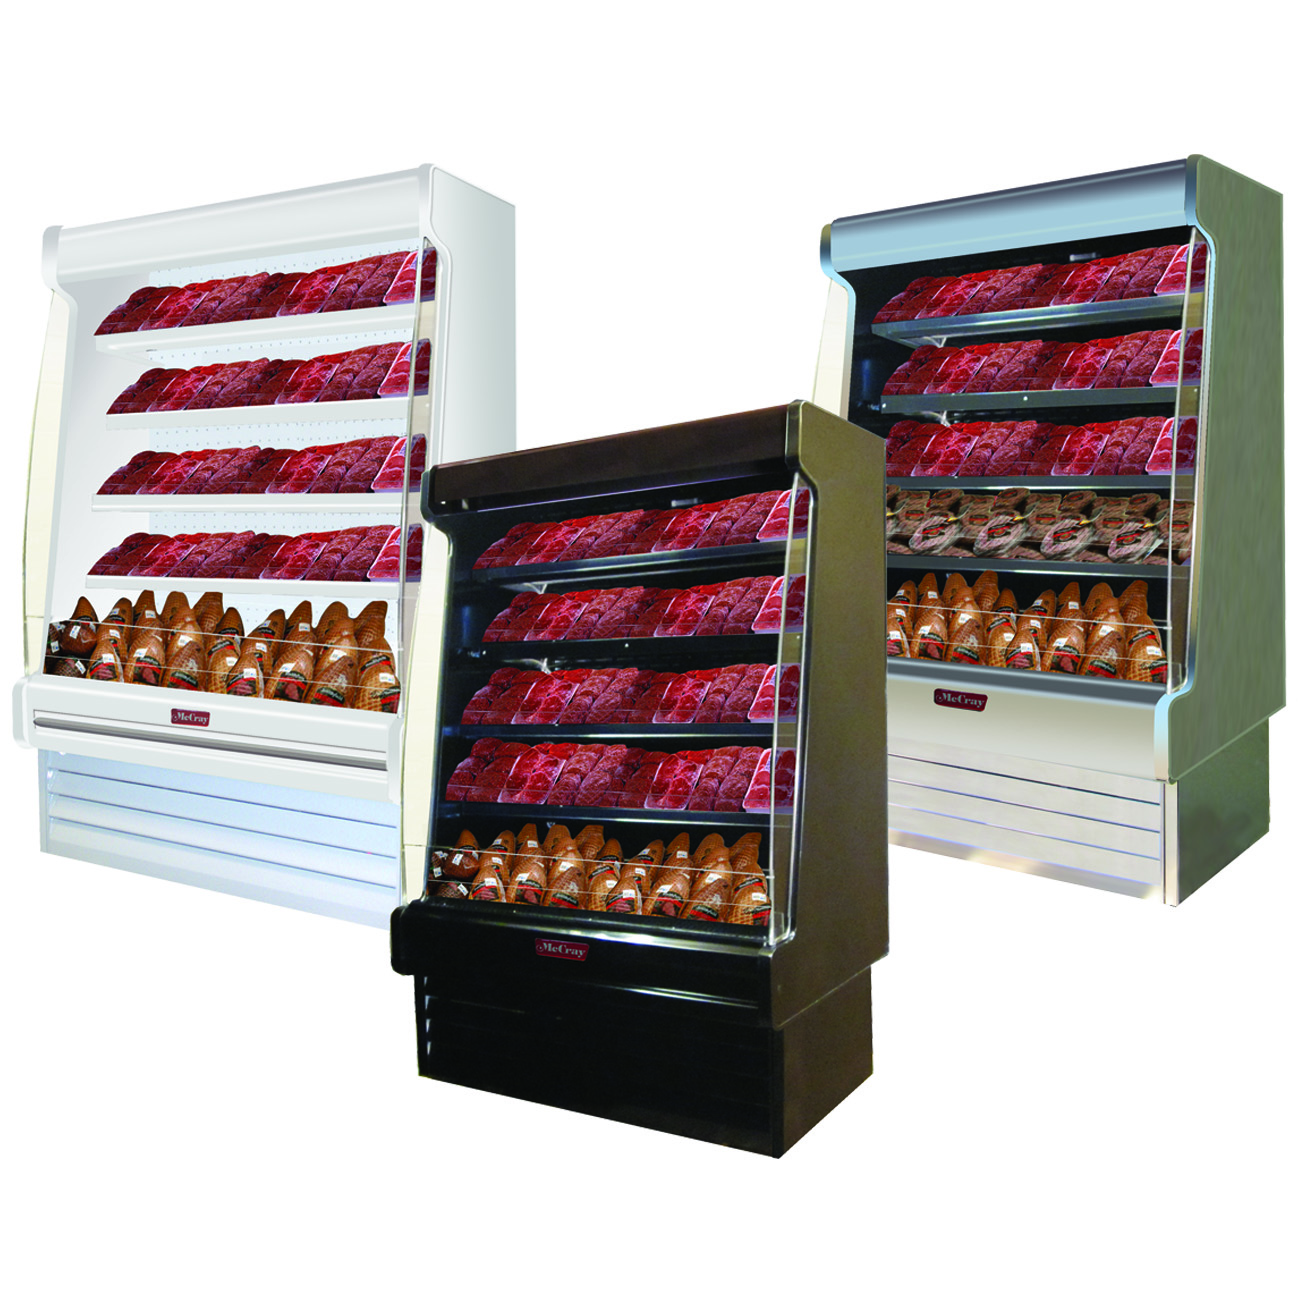 Howard-McCray SC-OM35E-6S-S-LED merchandiser, open refrigerated display